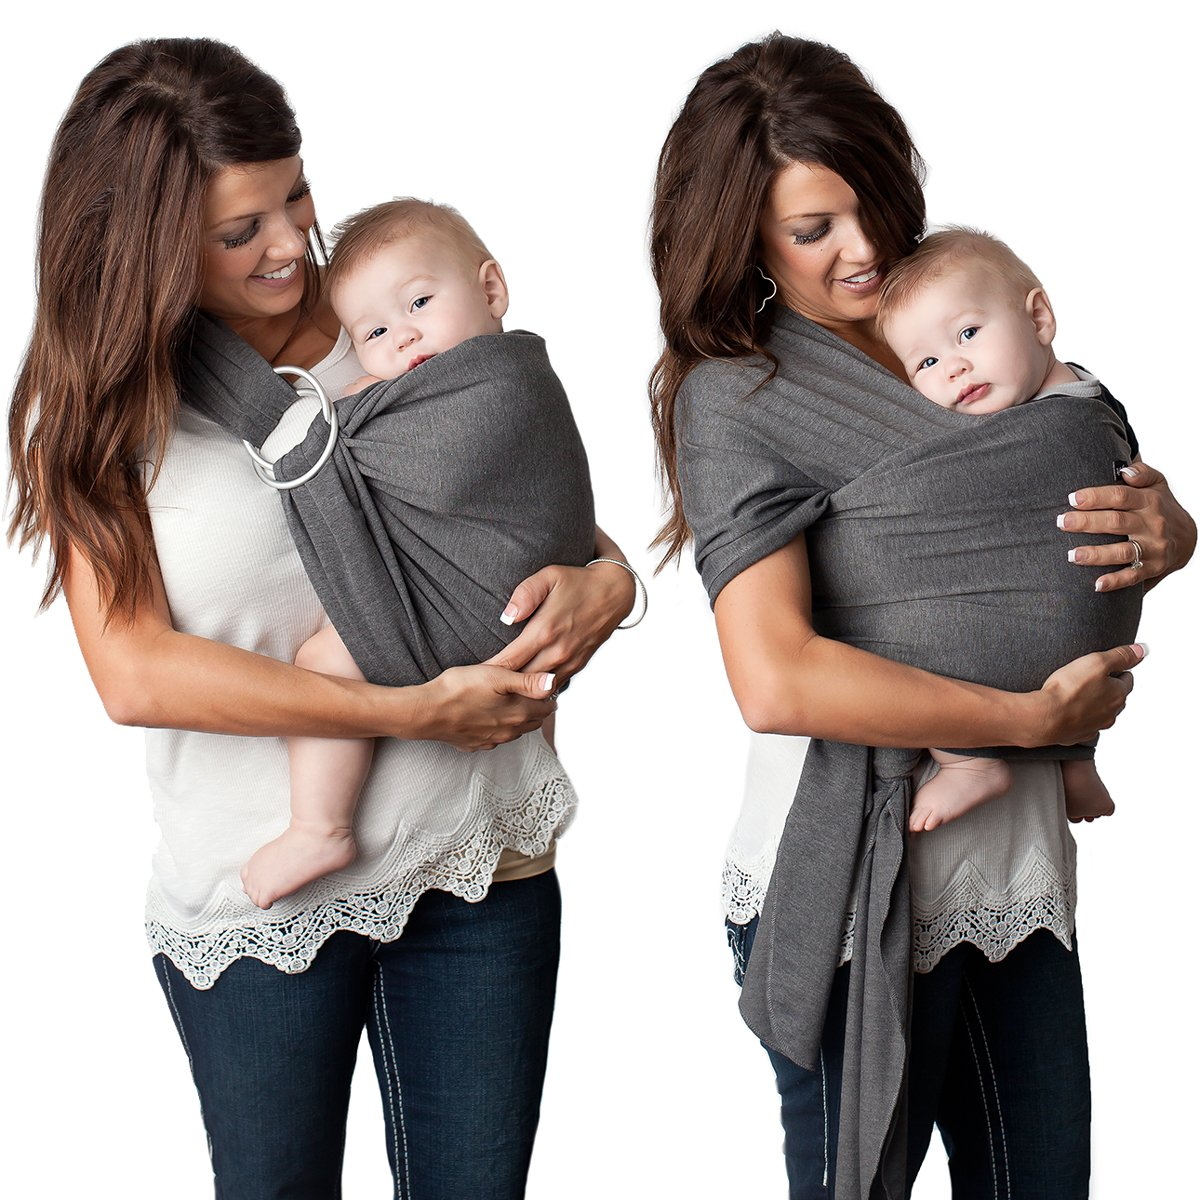 Kids N' Such 4 in 1 Baby Wrap Carrier and Ring Sling - Use as a Postpartum Belt or Nursing Cover - FREE Carrying Pouch - Best Baby Shower Gift for Boys or Girls - Premium Cotton Blend - Charcoal Grey